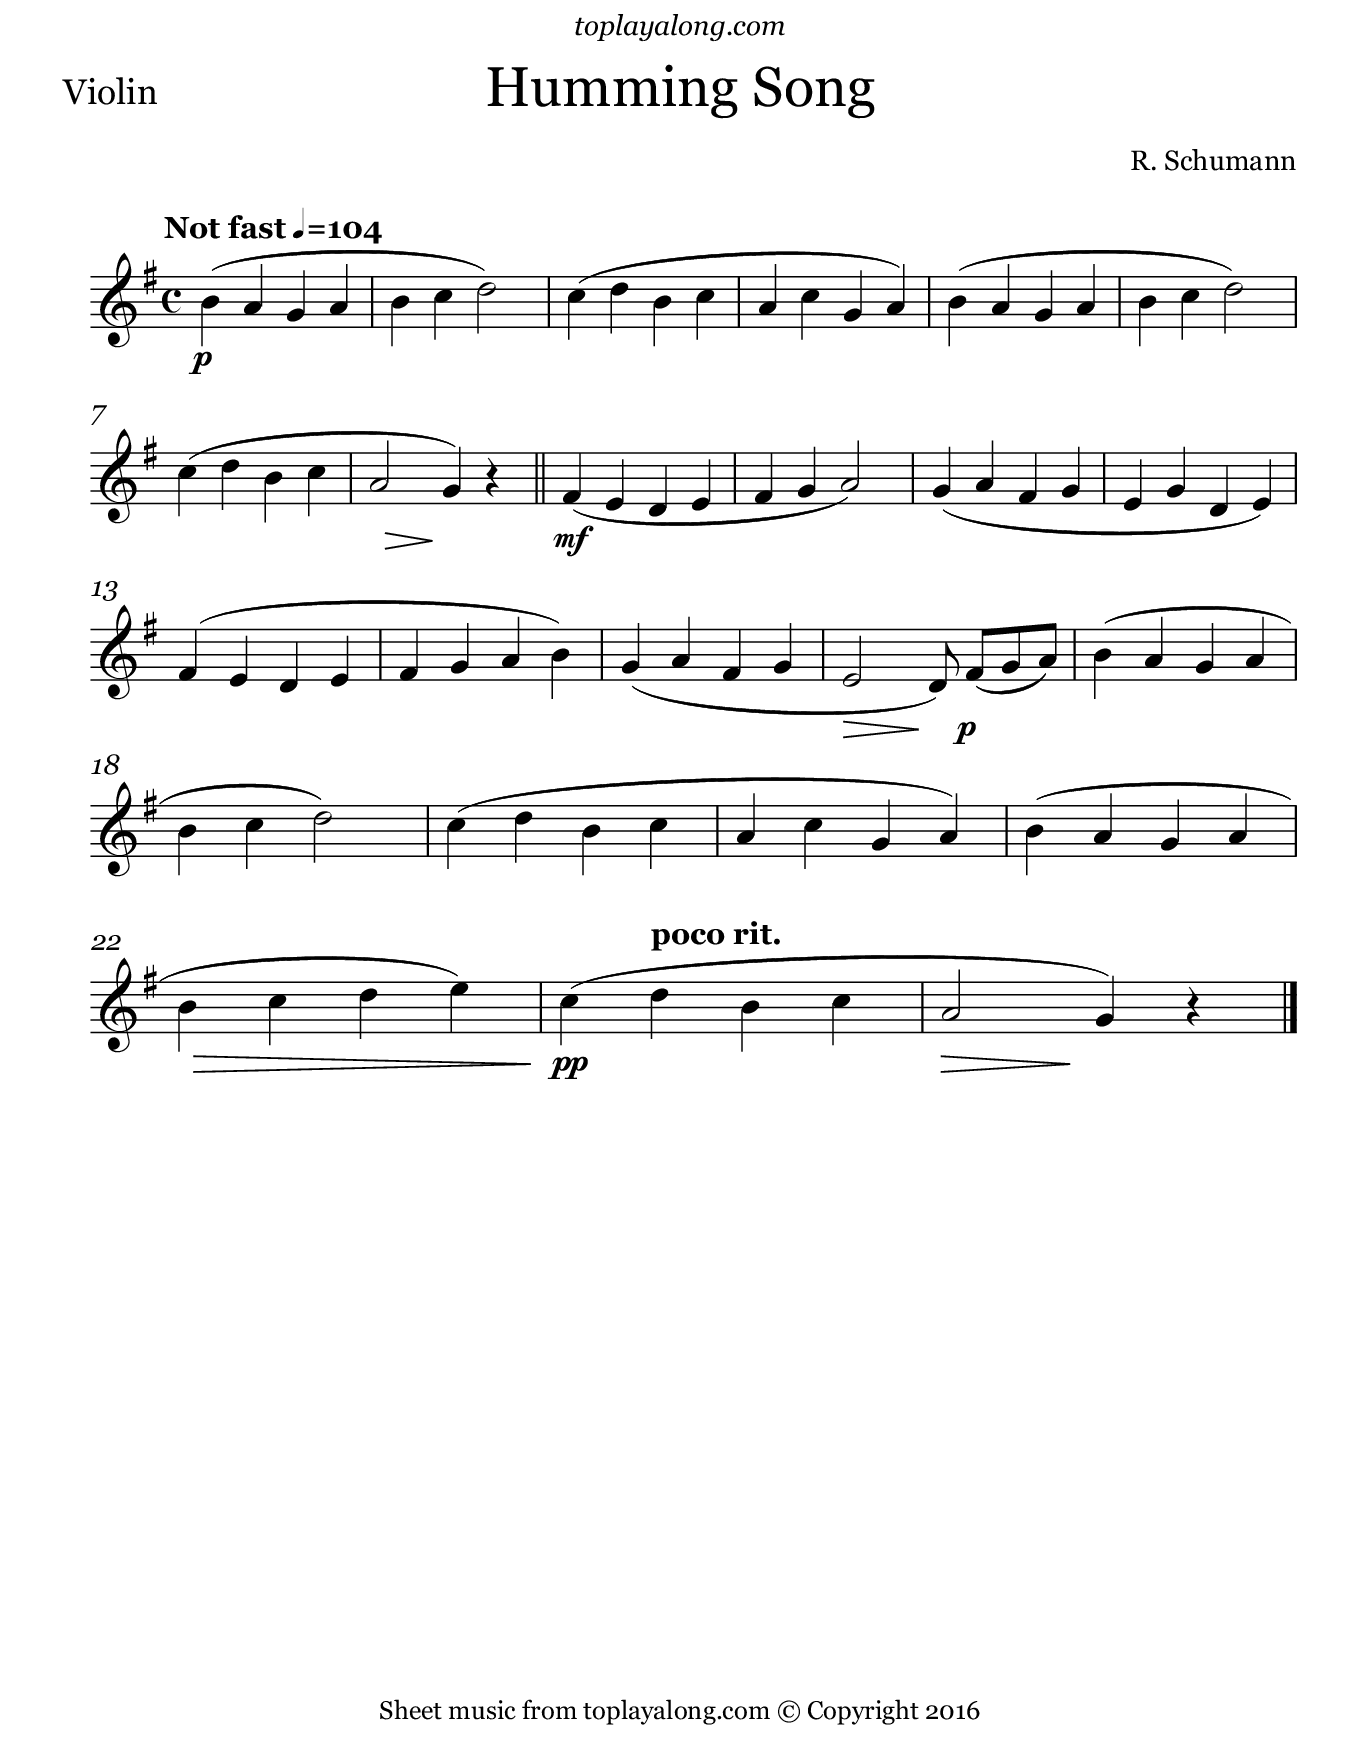 Humming Song by Schumann. Sheet music for Violin, page 1.